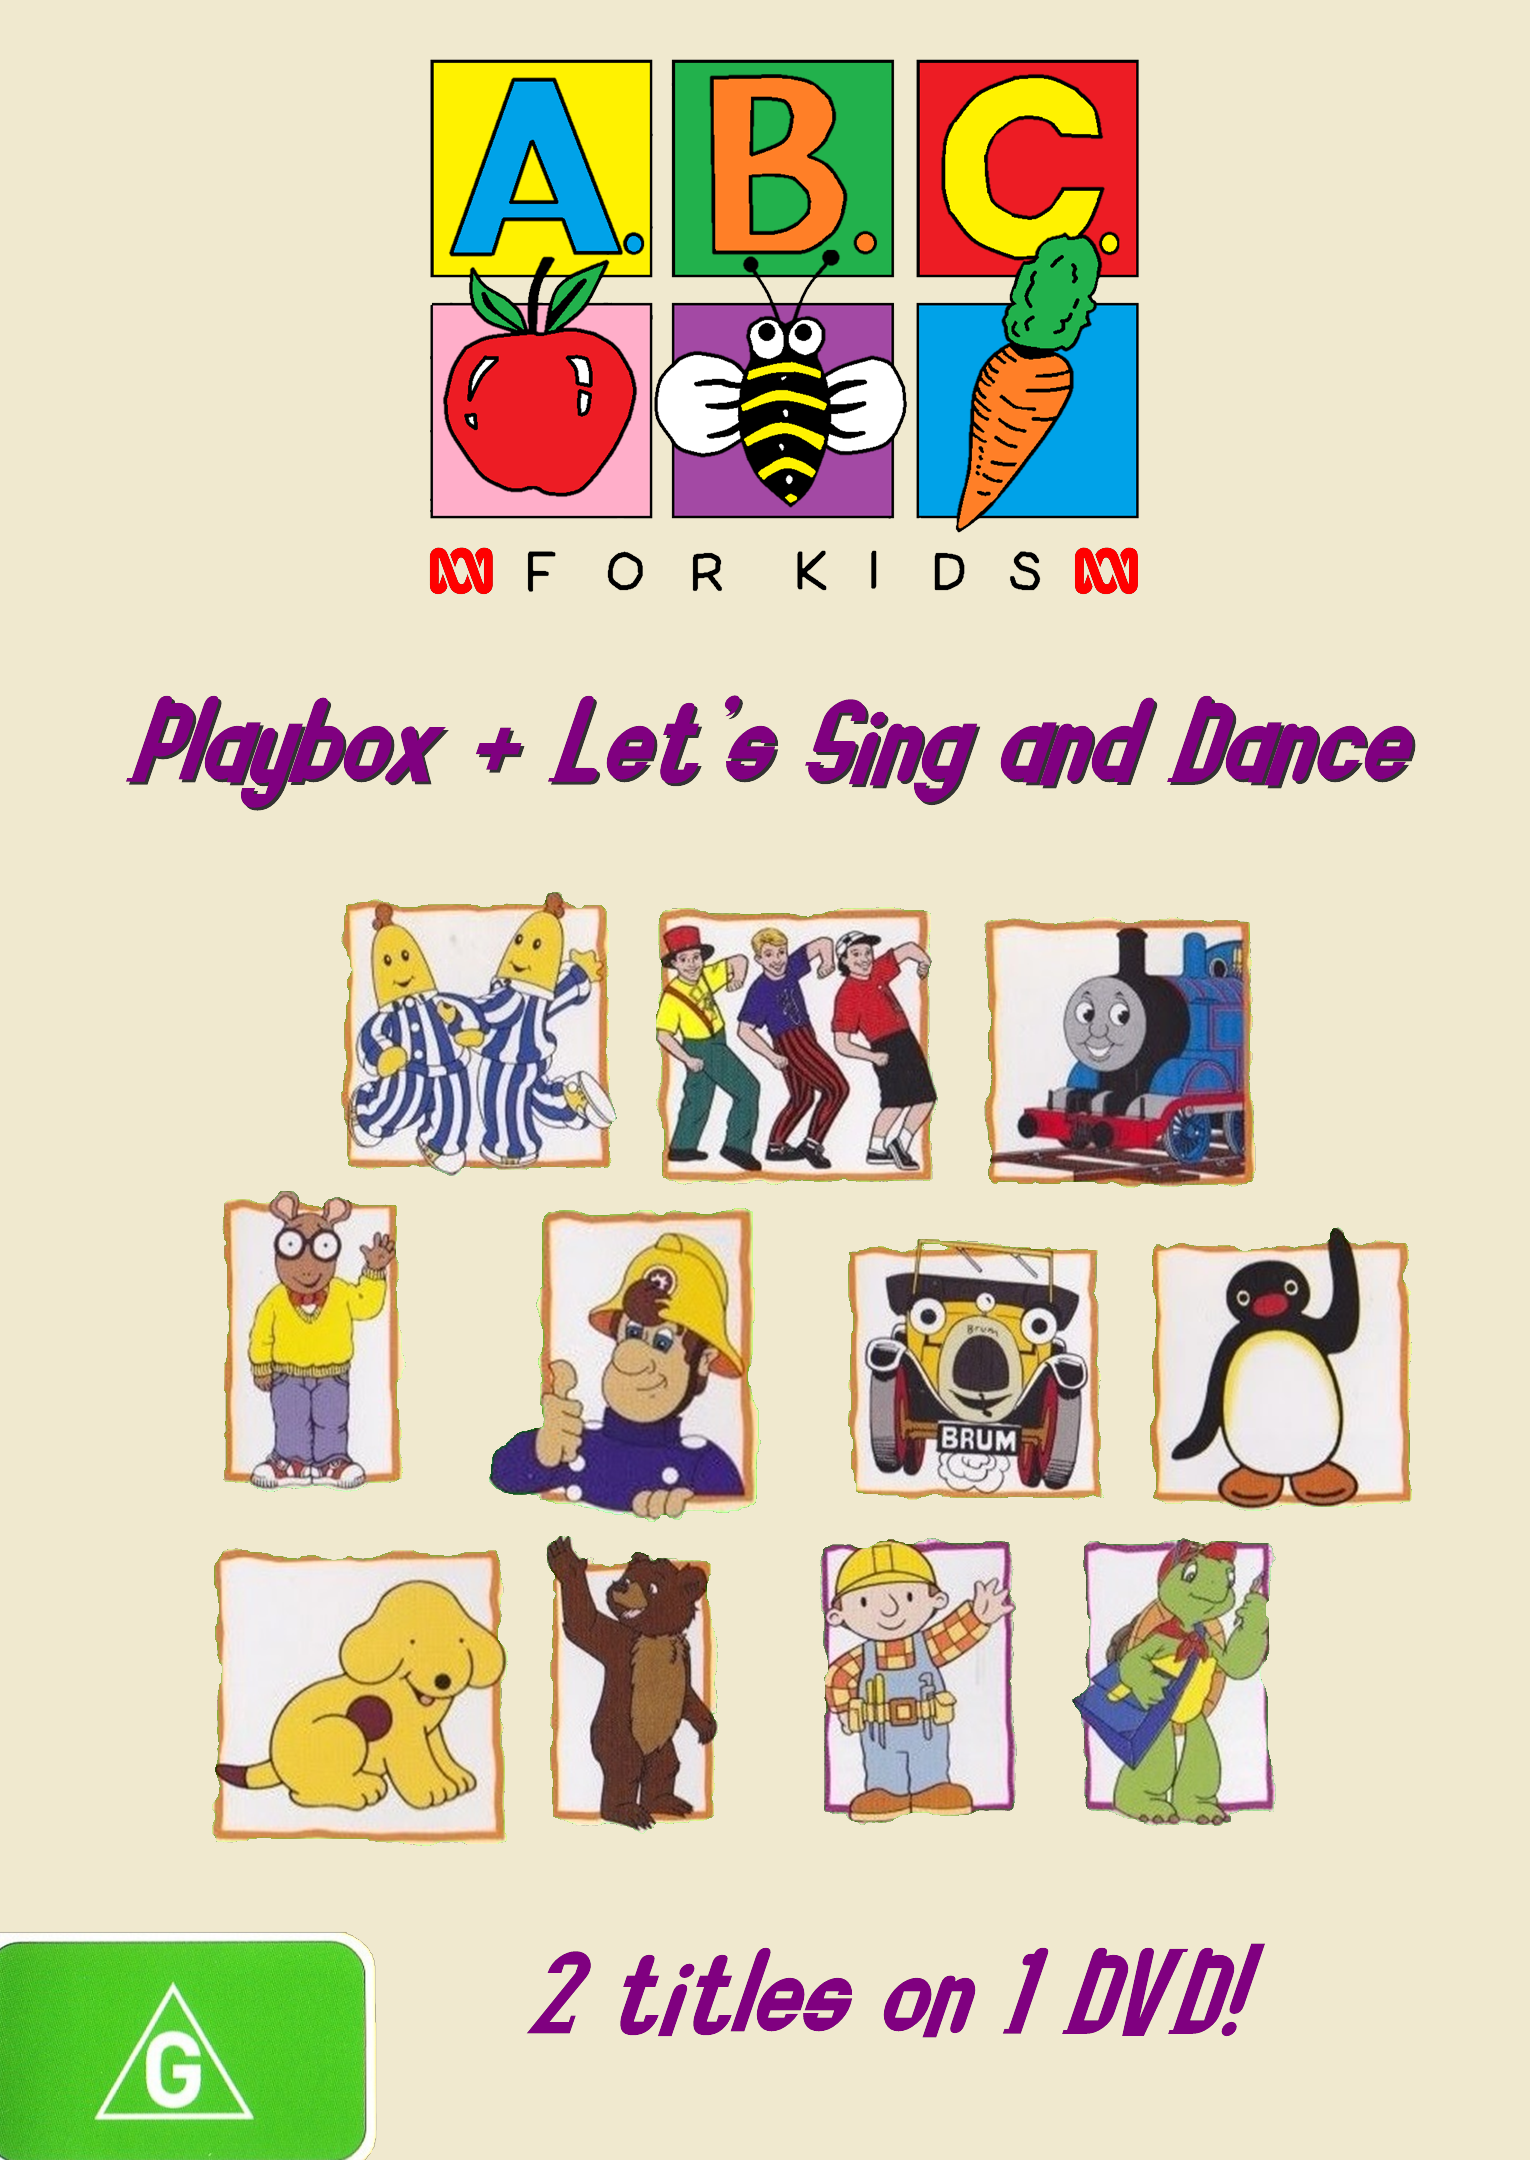 ABC for Kids: Play Box + Let's Sing and Dance